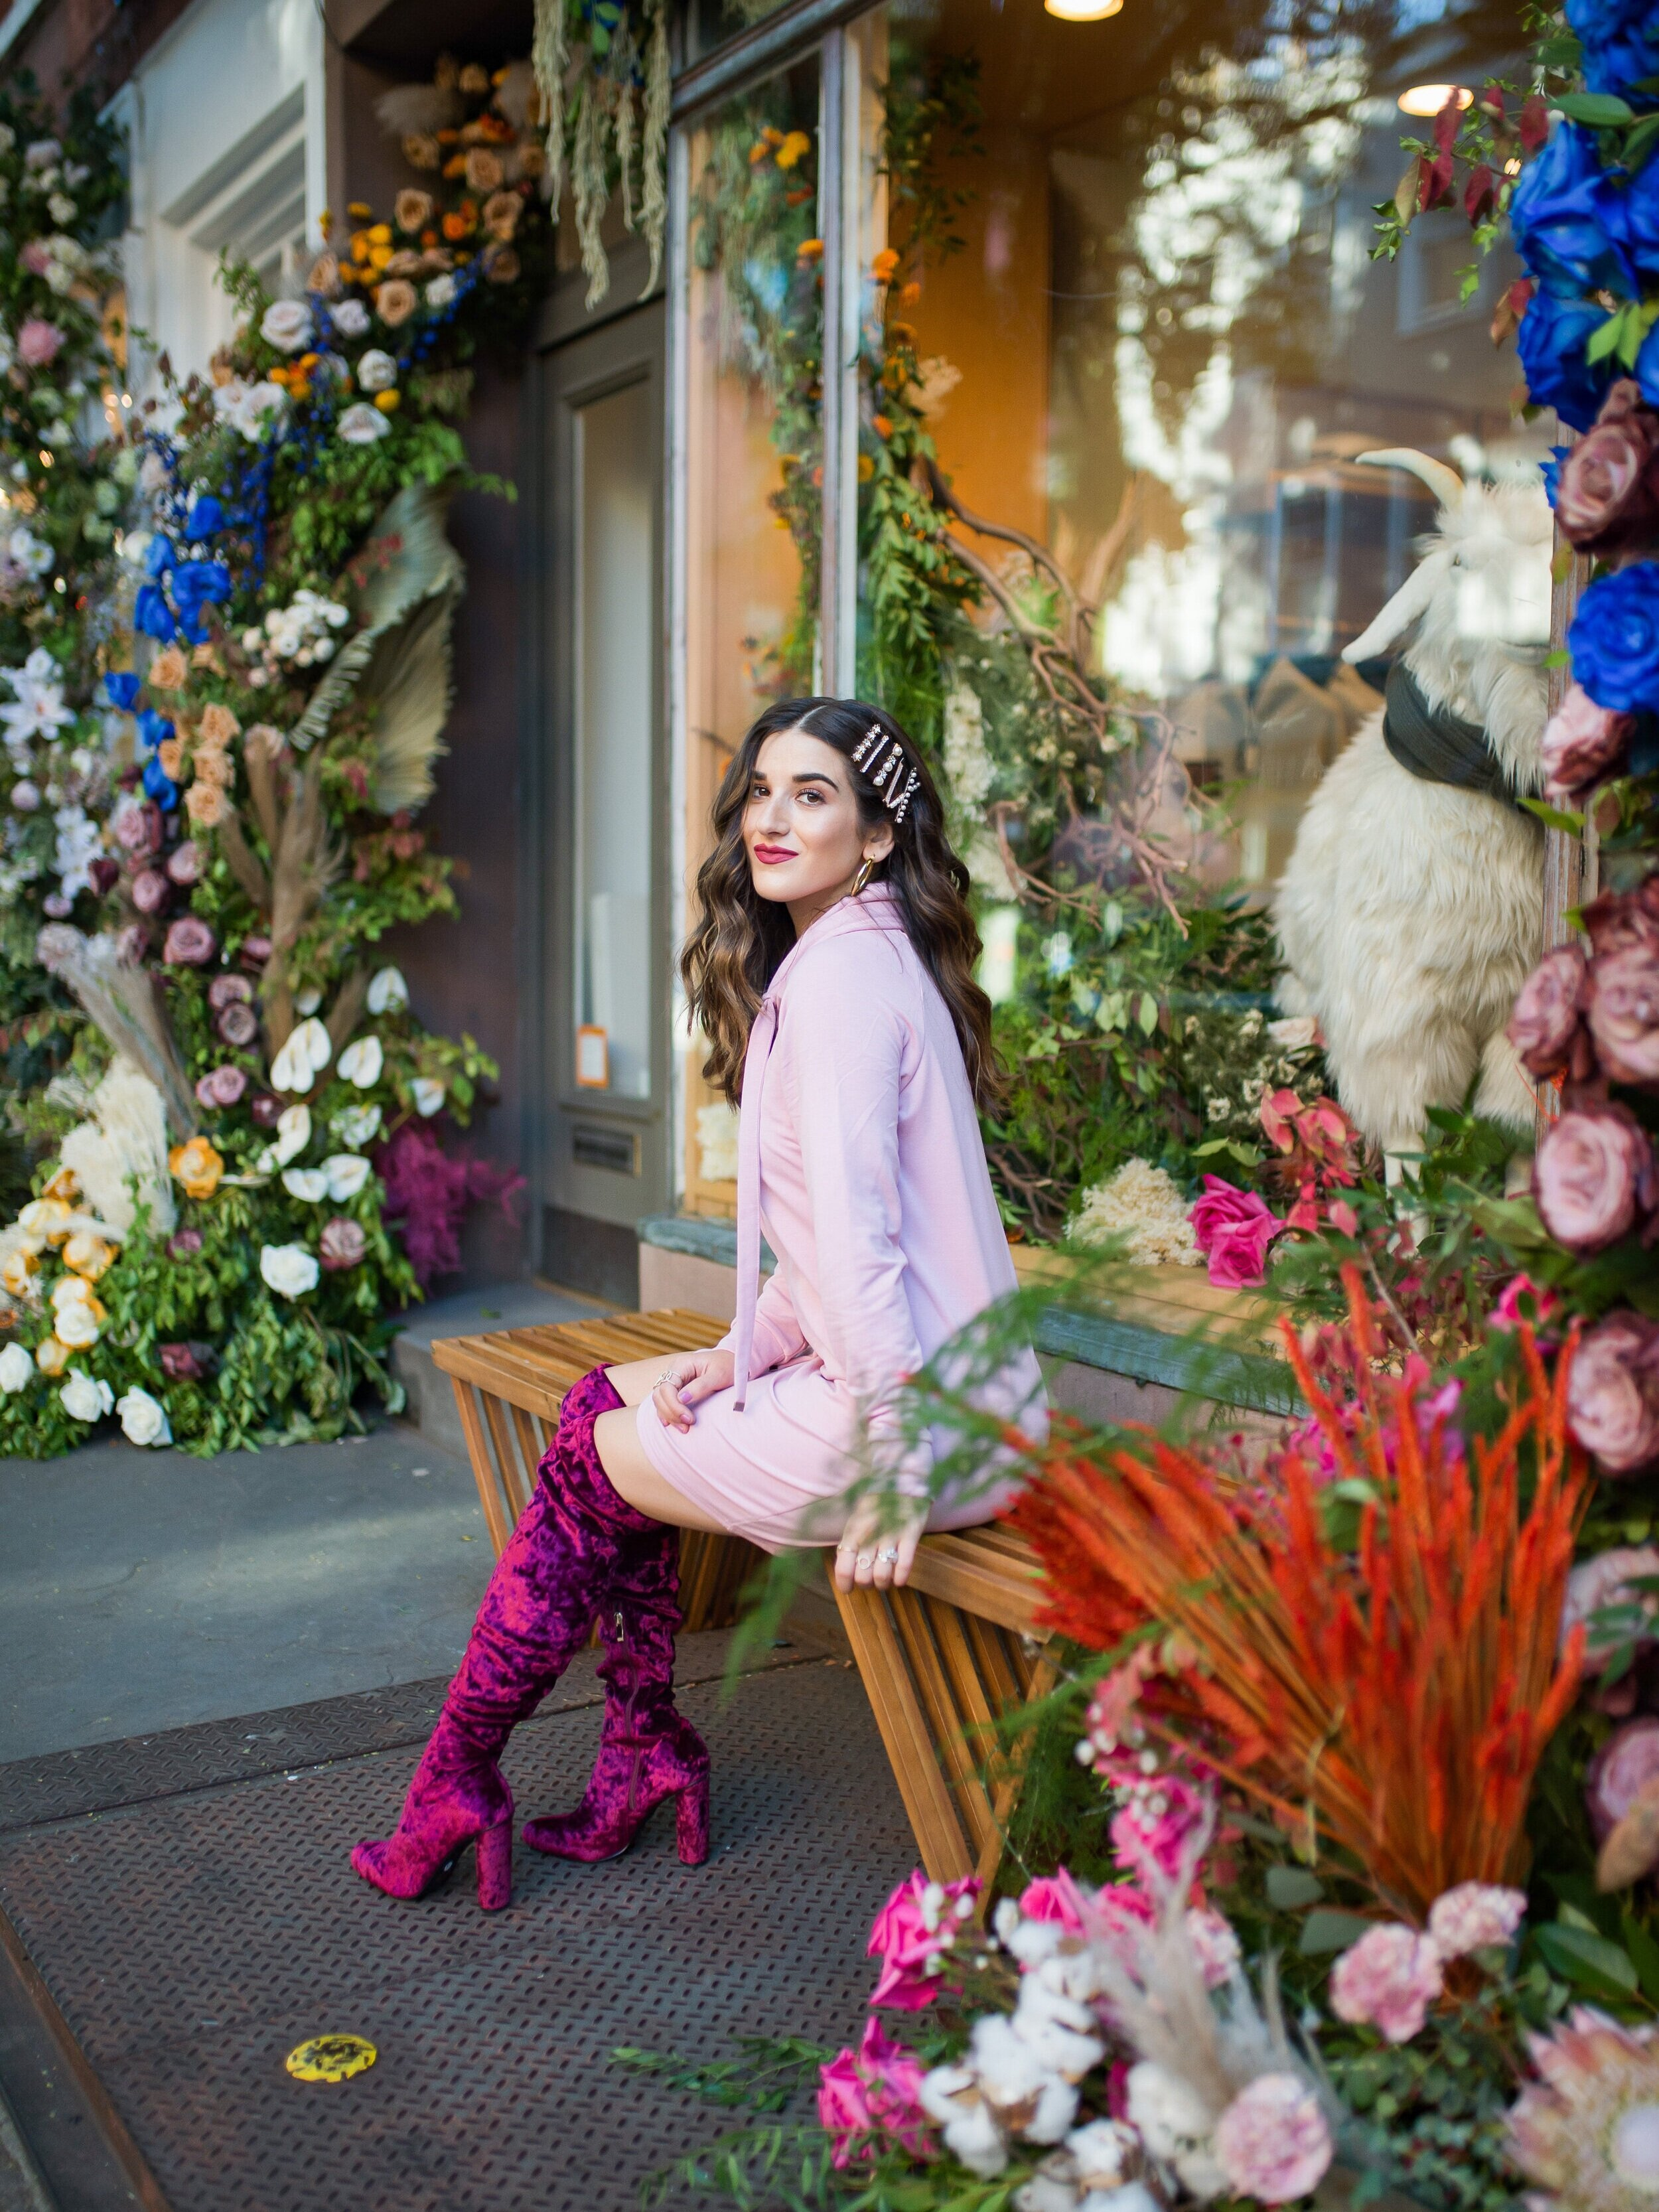 Pink Sweatshirt Dress Velvet OTK Boots Walmart Fashion Esther Santer Fashion Blog NYC Street Style Blogger Outfit OOTD Trendy Shopping Girl What How To Wear Hair Accessories Jewel Clips Fall Winter Styling Affordable Maroon Shoes Floral Backdrop Steal.jpg